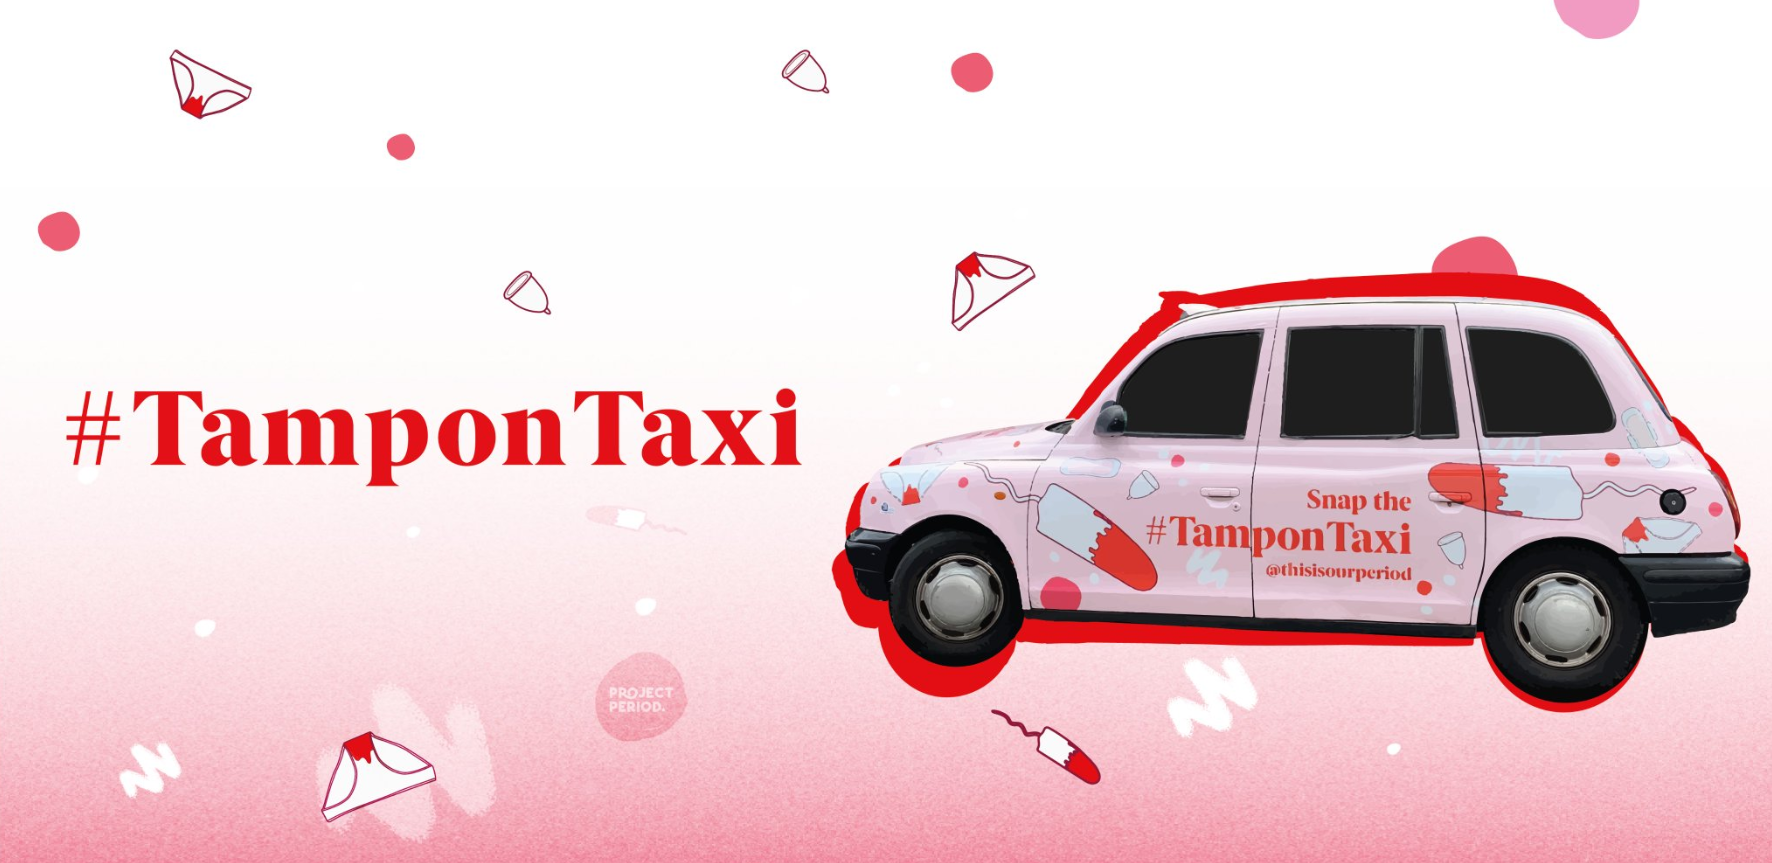 Period Poverty Taxi - End Period Poverty NOW